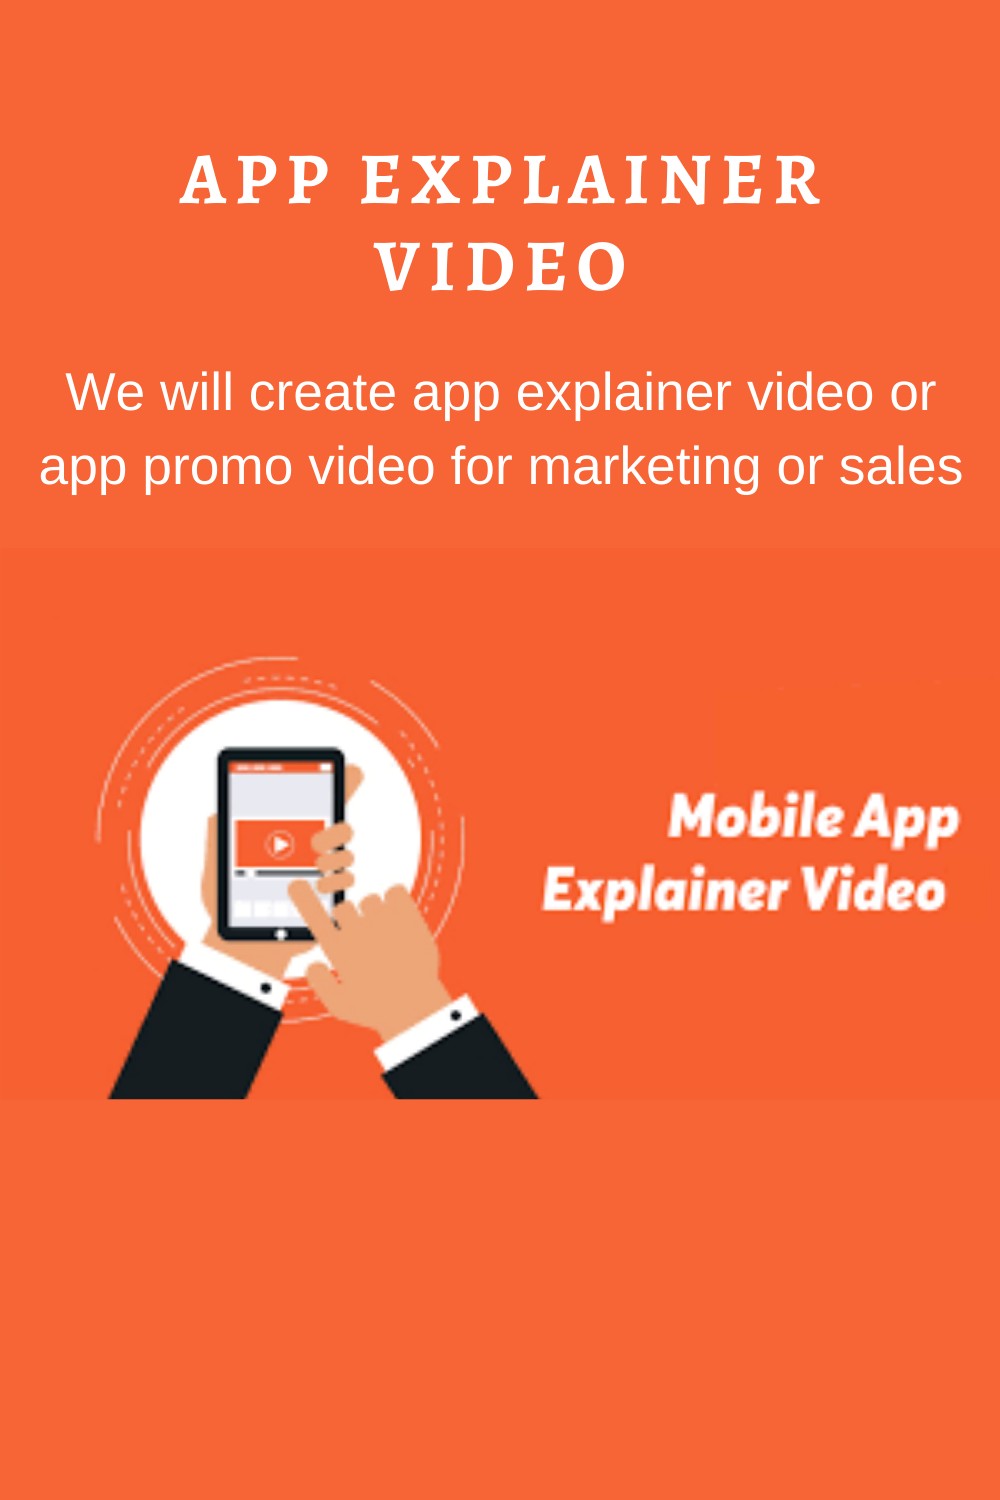 How To Create An App Promo Video How To Make Promo Video For Android App How To Make App Video Promo Videos Explainer Videos Video Maker App